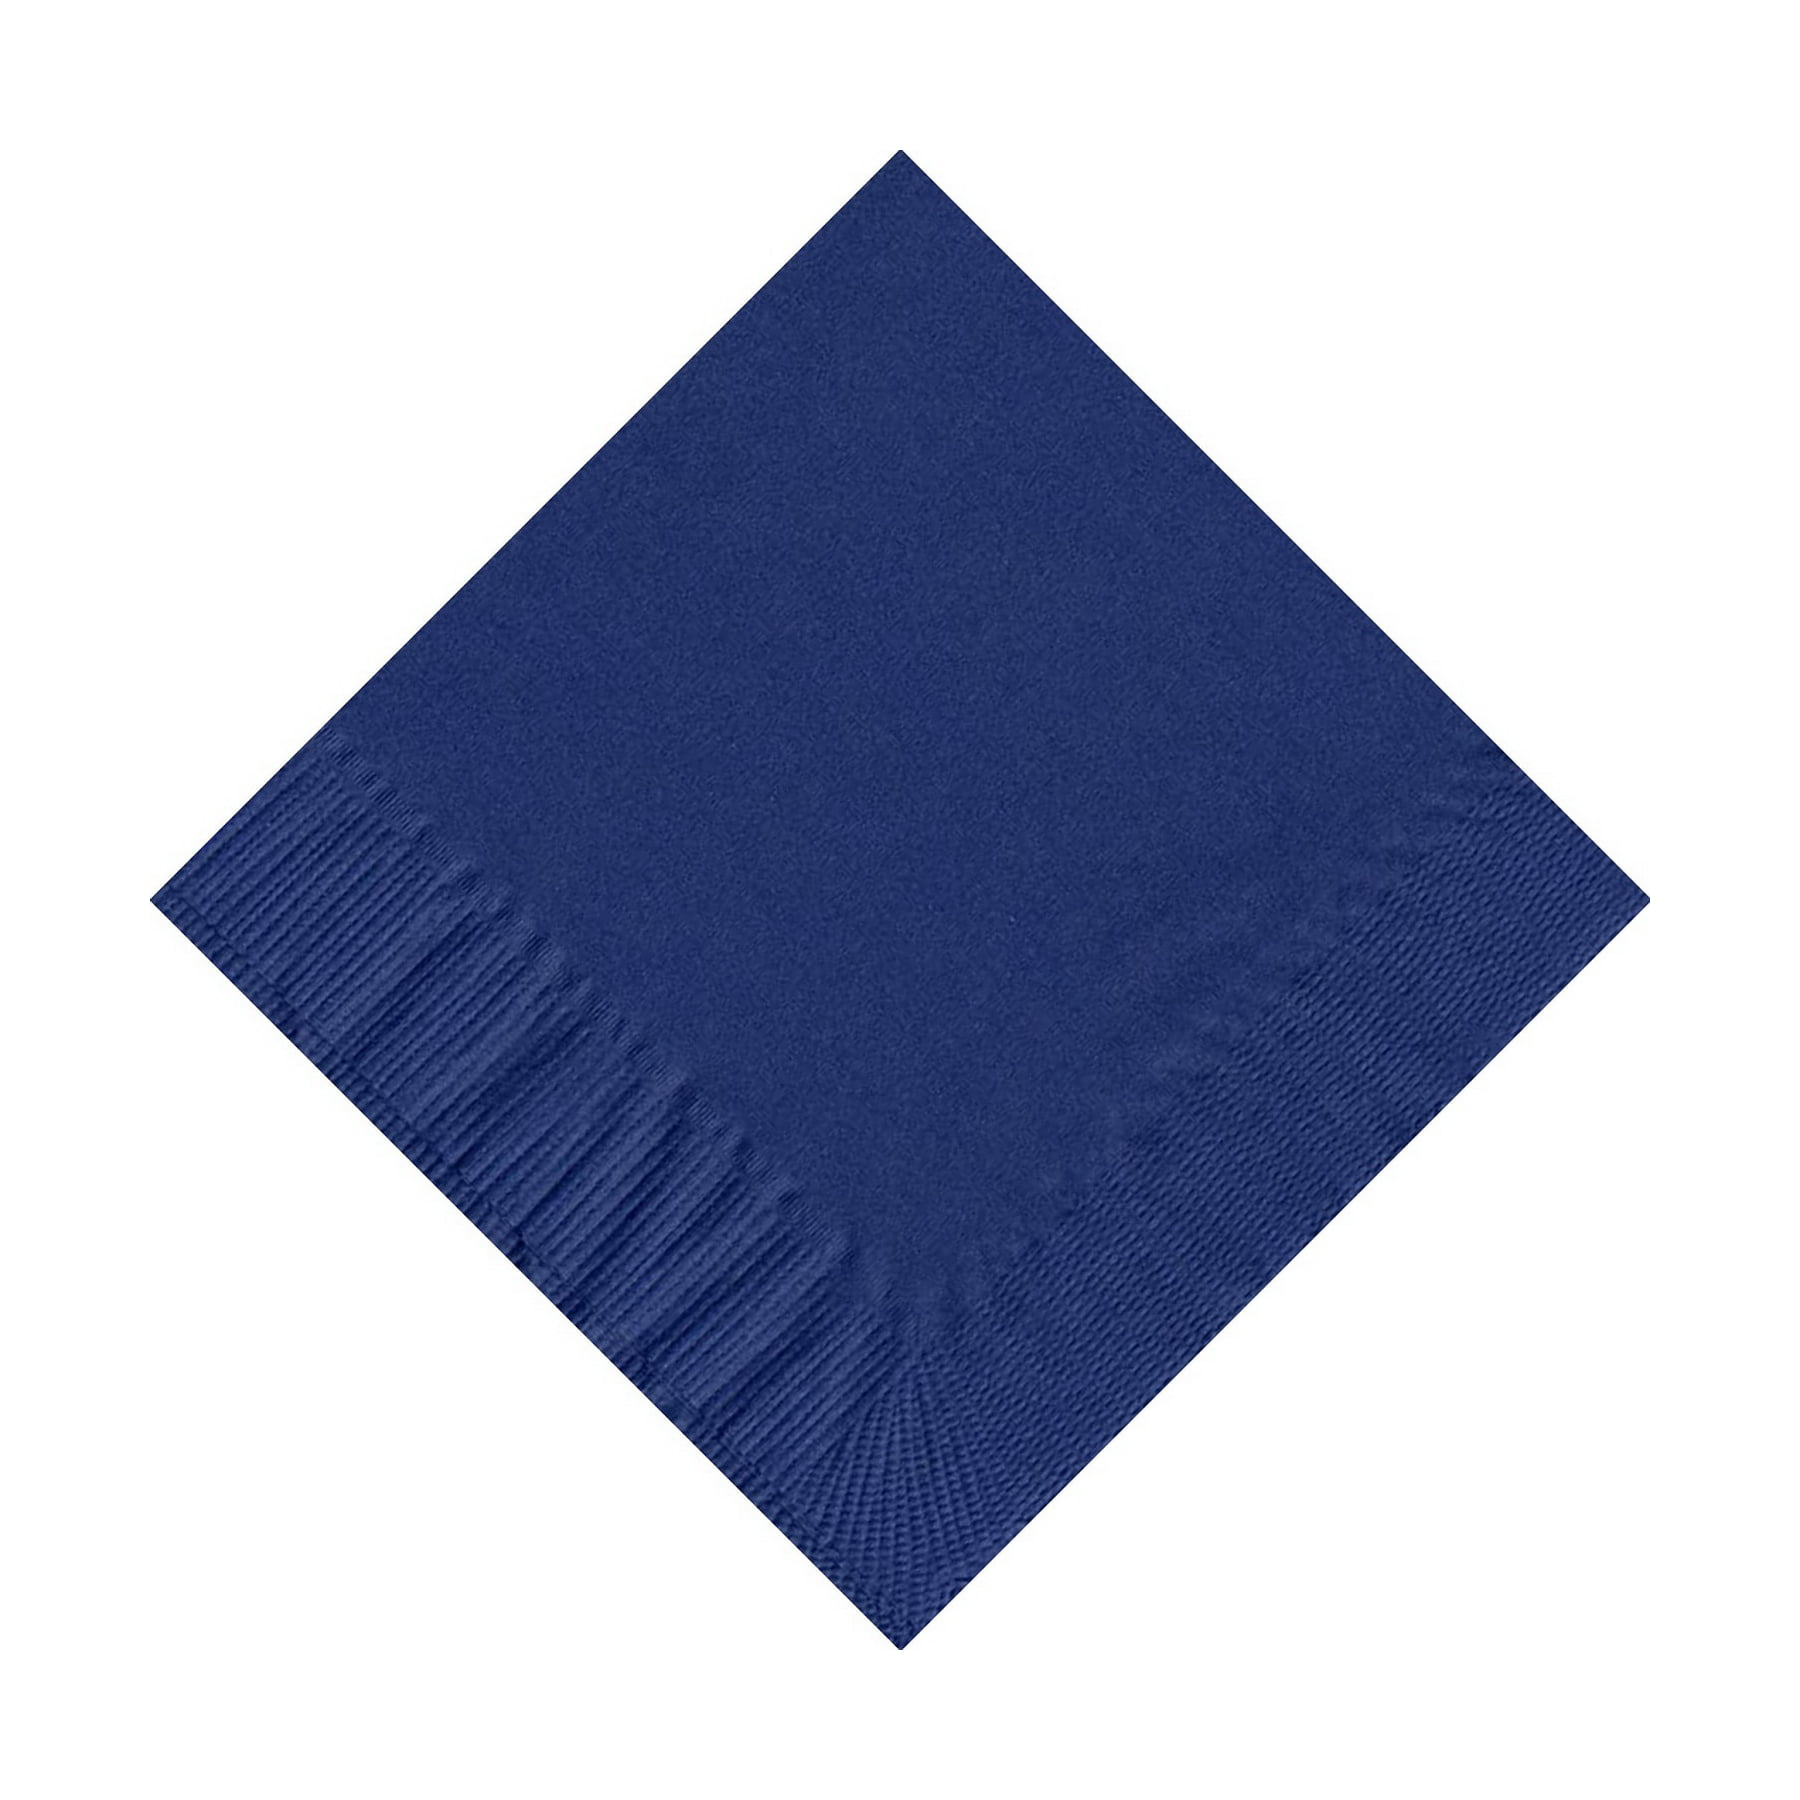 600 (12 Pks of 50) 2 Ply Plain Solid Colors Beverage Cocktail Napkins Paper Navy Blue by CREATIVE CONVERTING